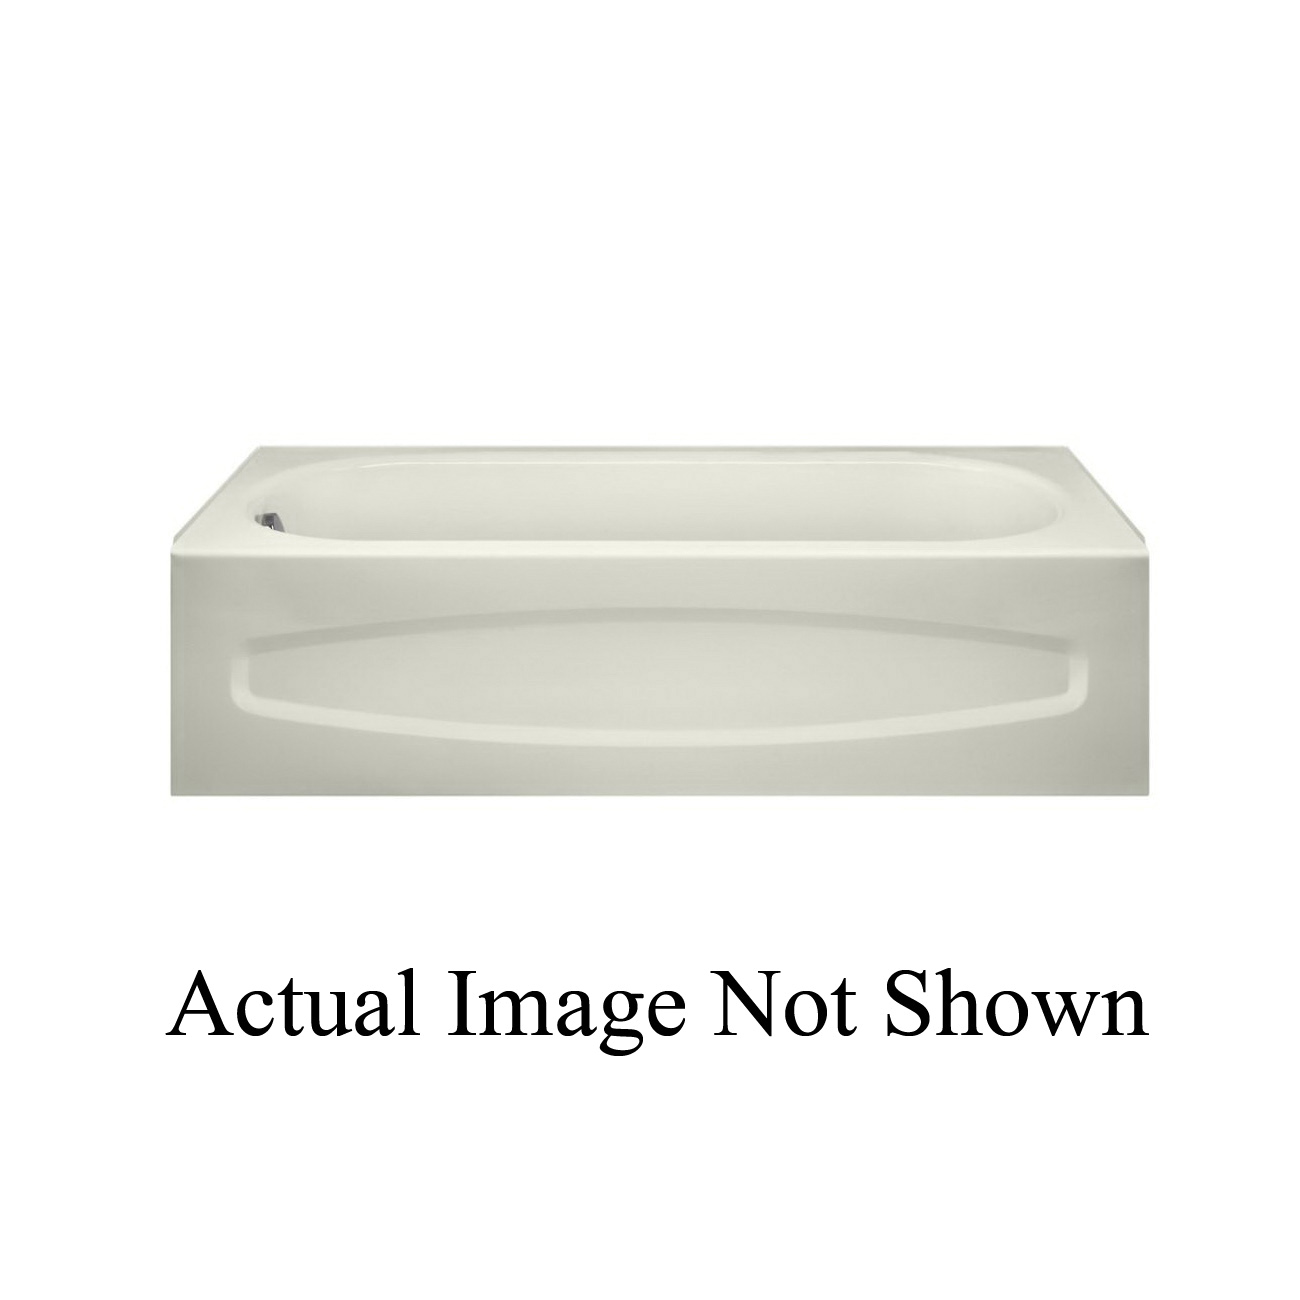 American Standard 0255212.020 New Salem® Recessed Bathtub With Integral Apron, Rectangular, 60 in L x 30 in W, Left Hand Drain, White, Domestic